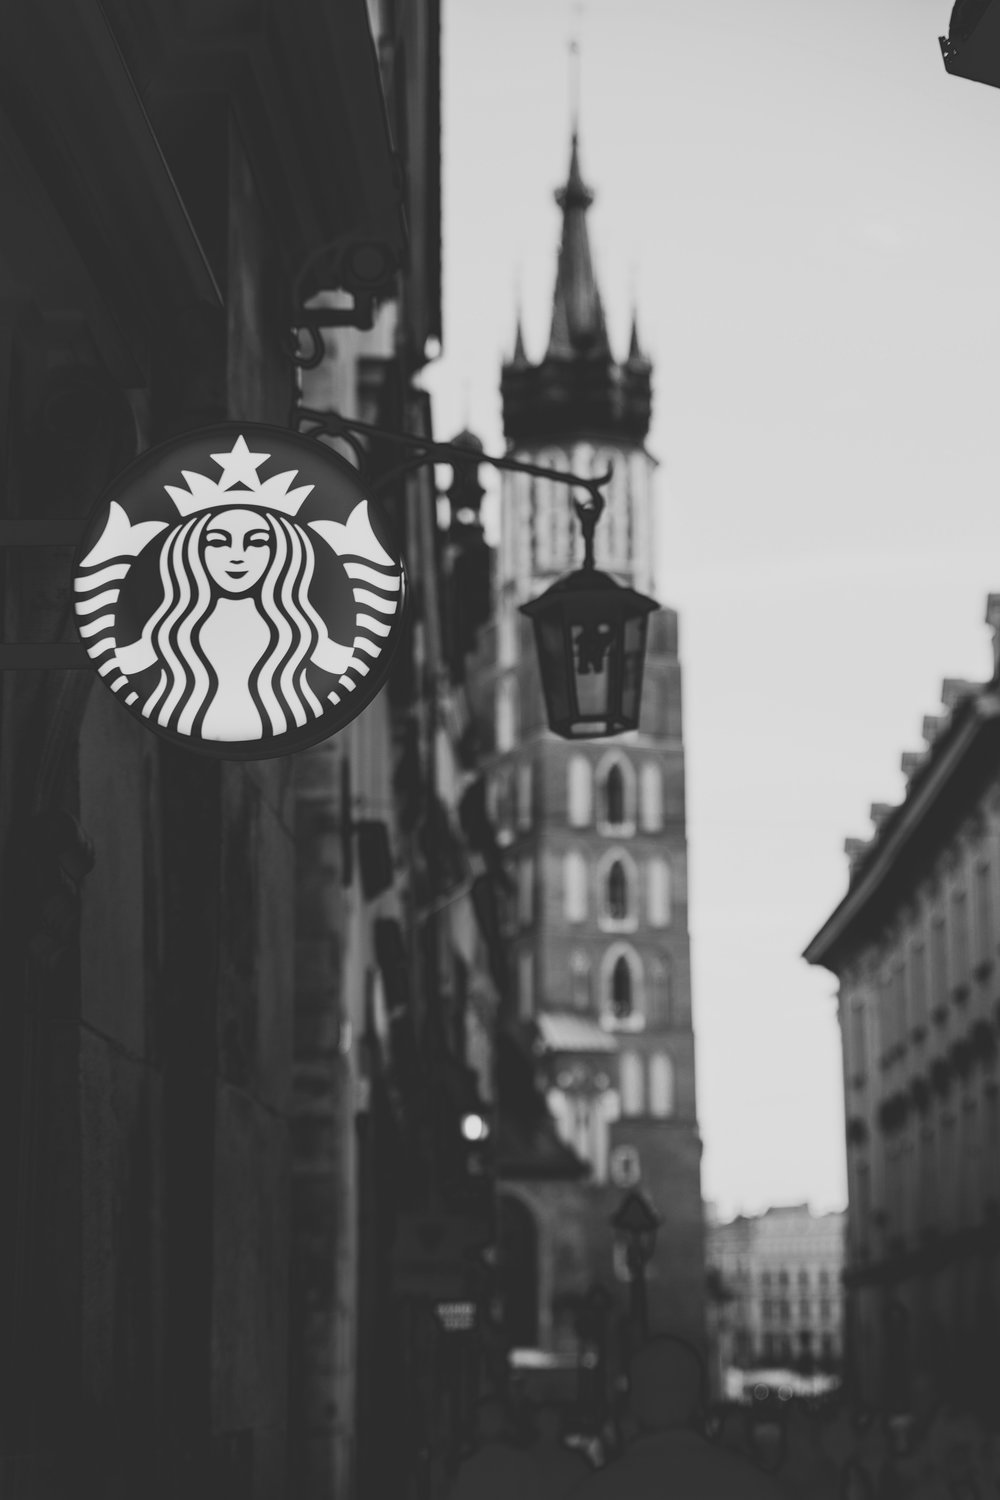 A Starbucks sign in the foreground, with city streets behind